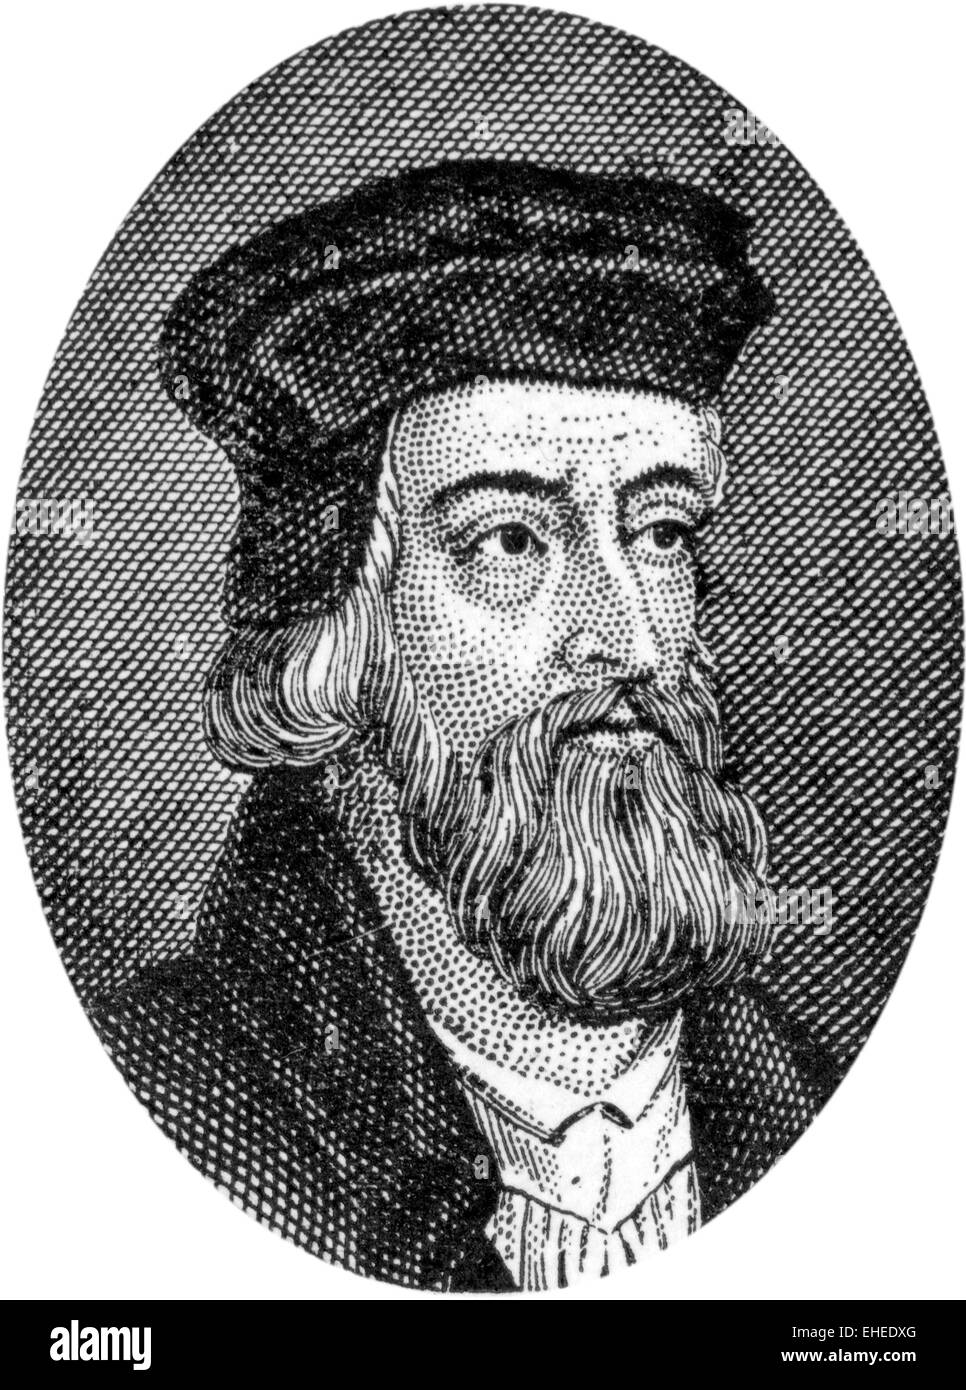 Engraving of John Wycliffe, English Bible Translator and Reformer, 1324 - 1384 - Stock Image